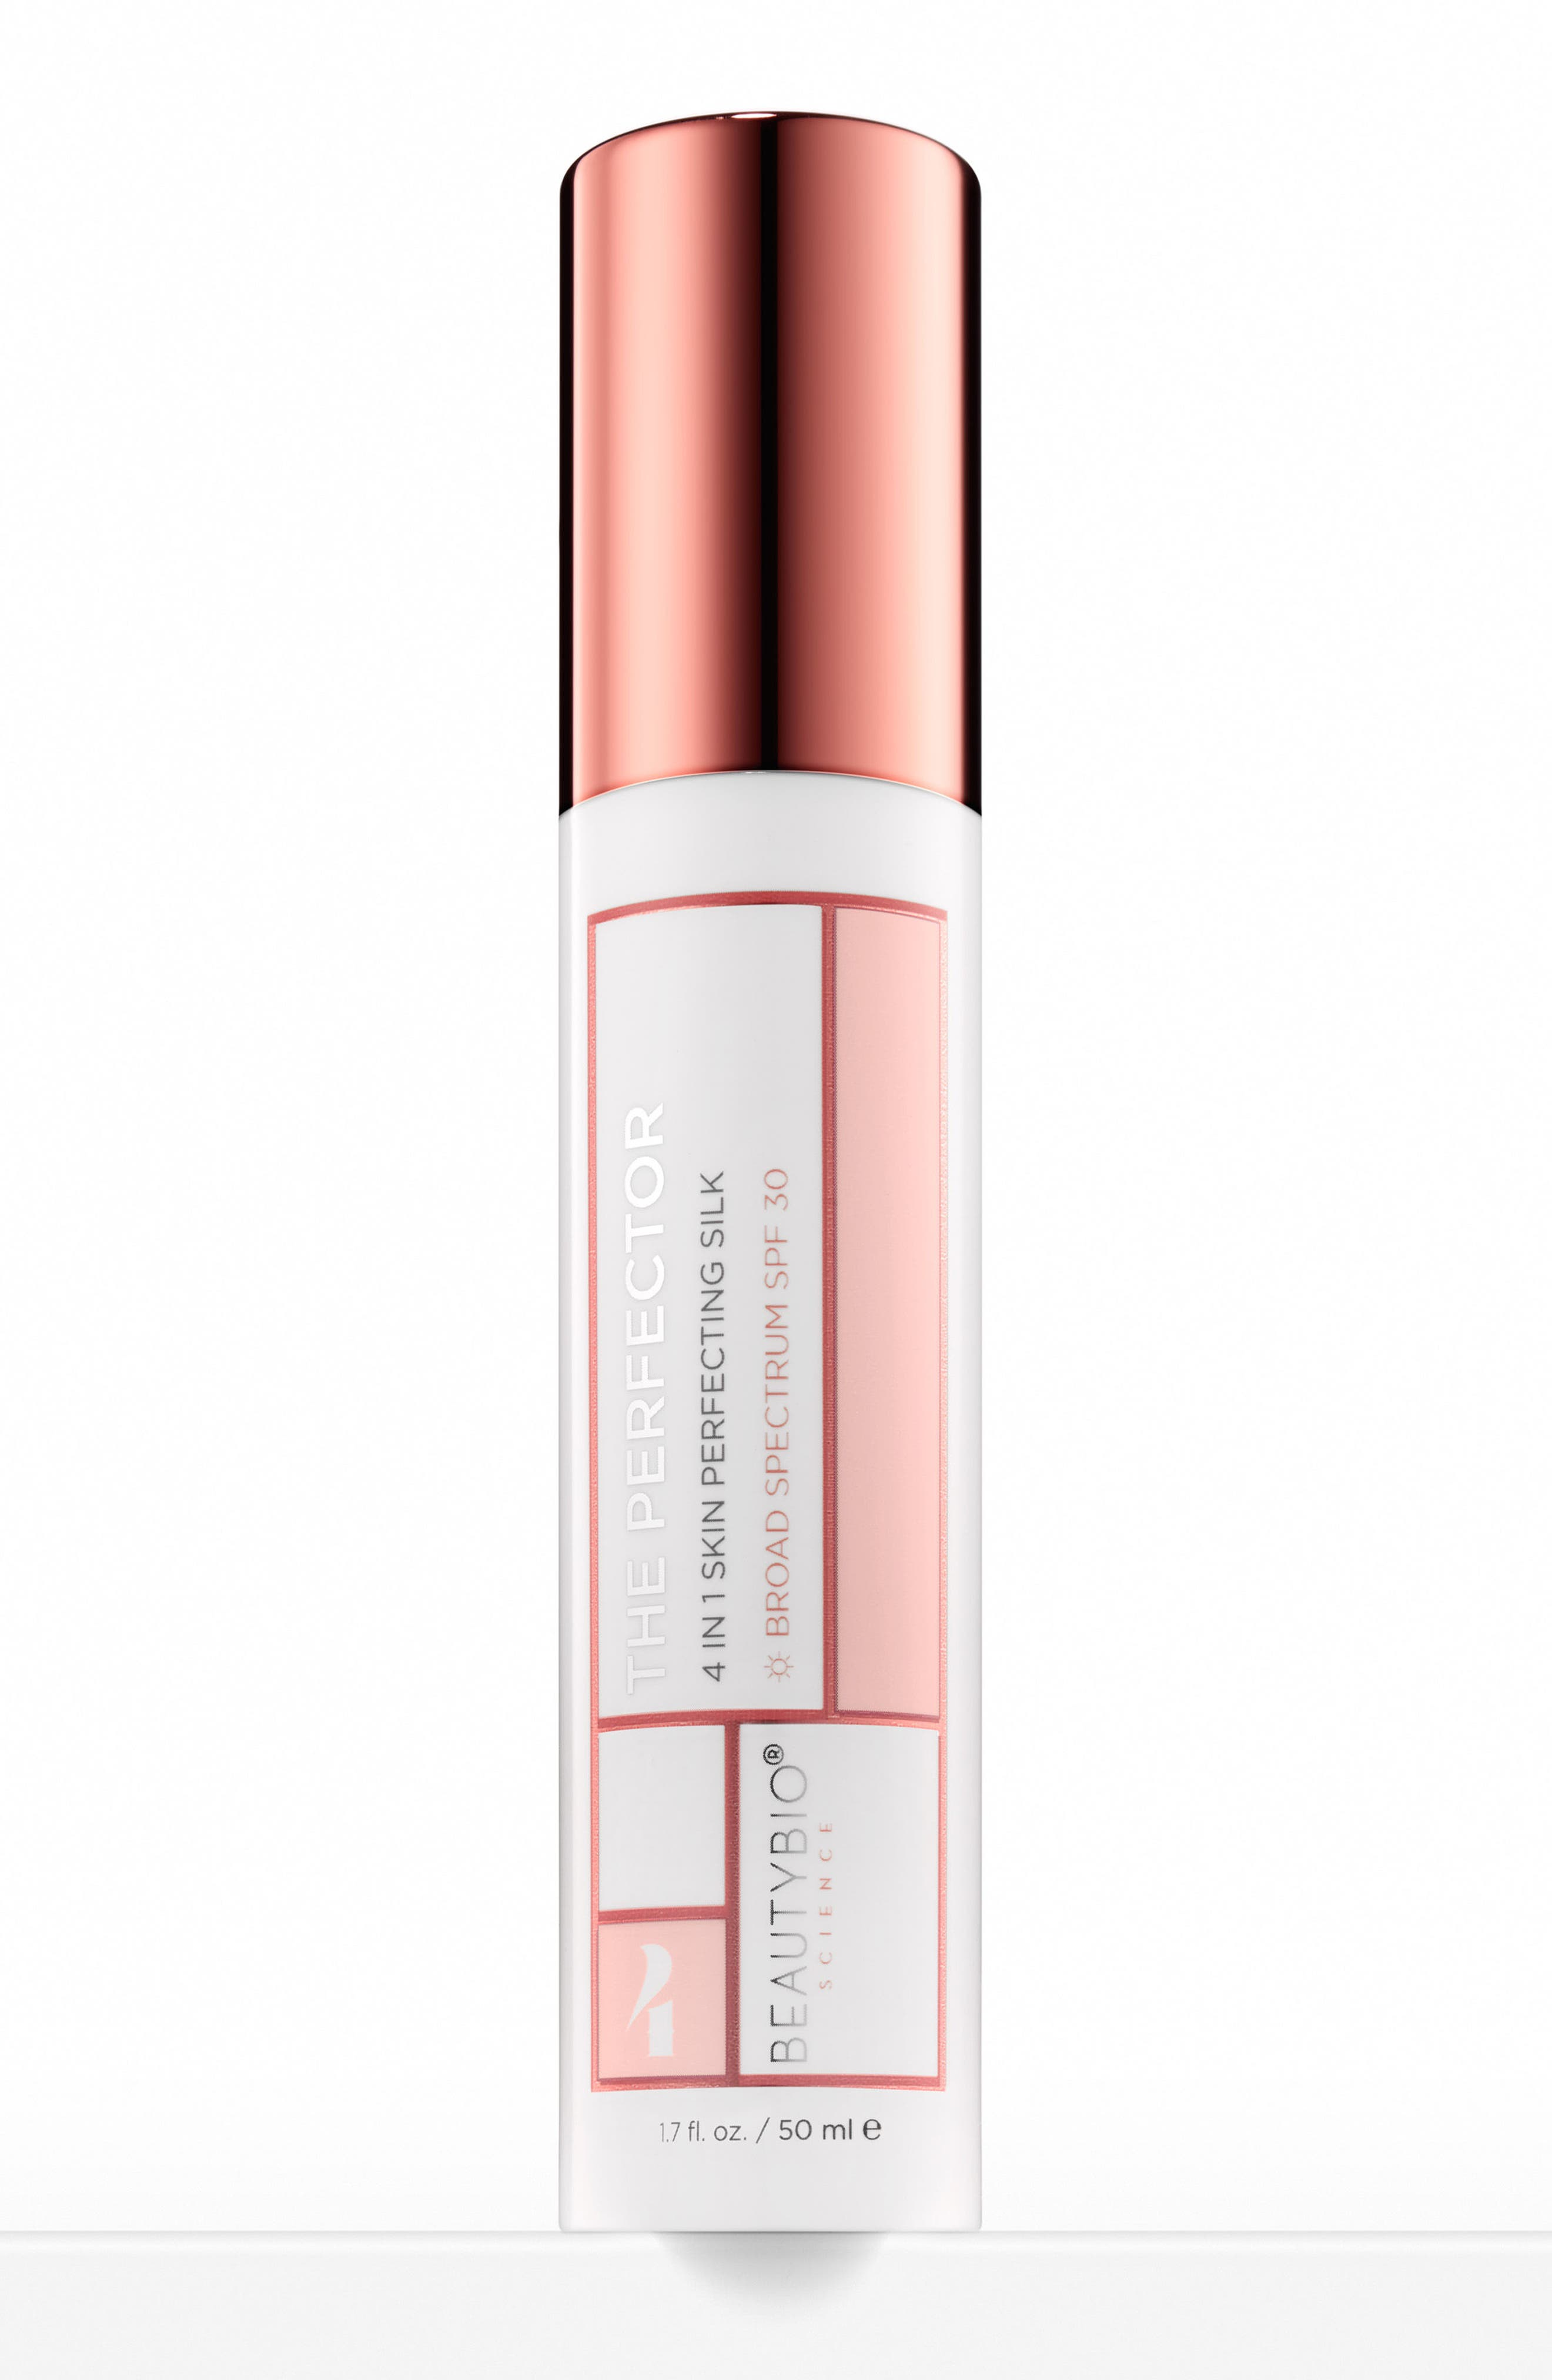 Beauty Bioscience® The Perfector 4-in-1 Skin Perfecting Silk SPF 30